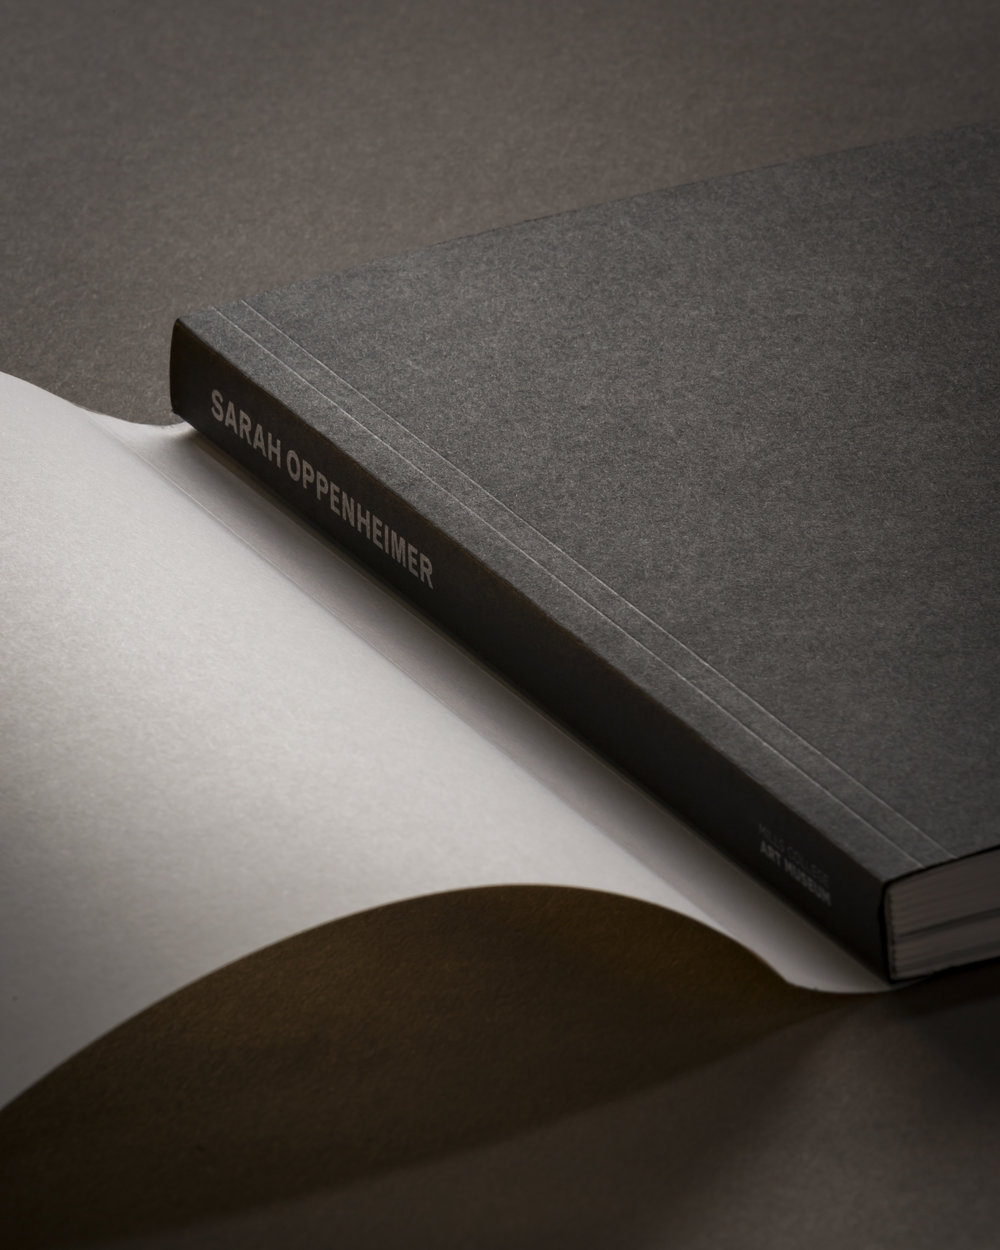 Offset printed and lay-flat perfect bound with jacket